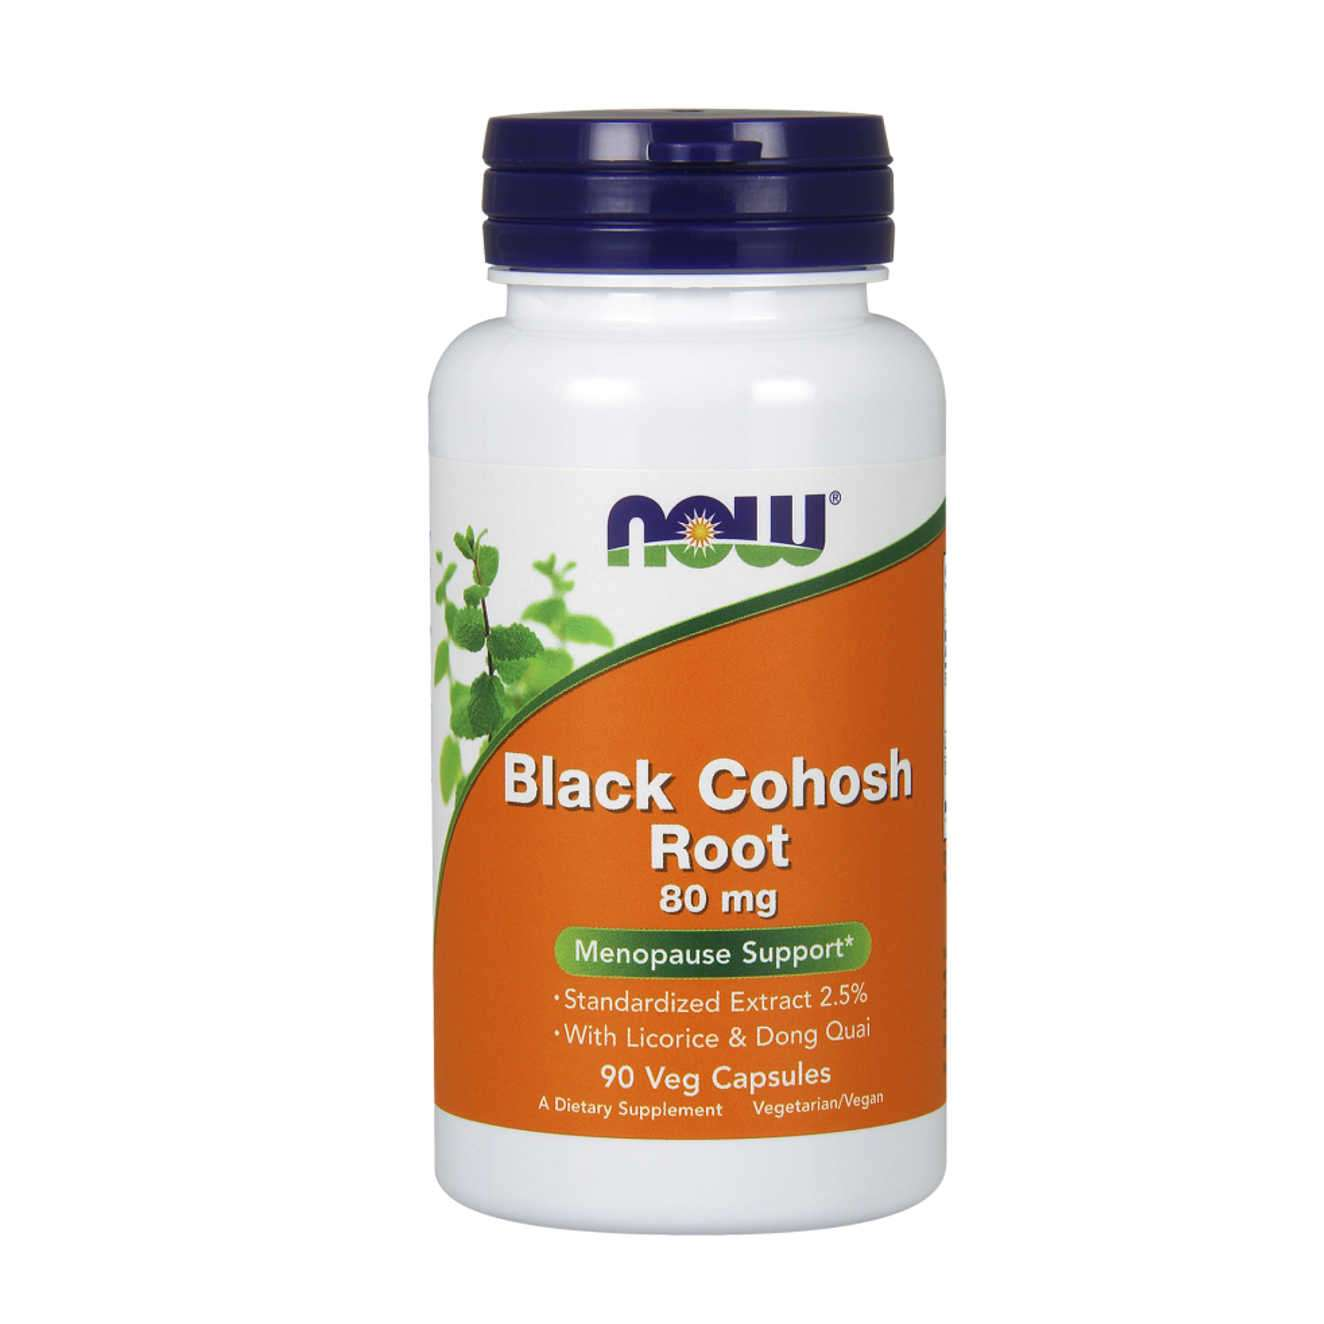 BLACK COHOSH ROOT 80mg - 90 veg caps